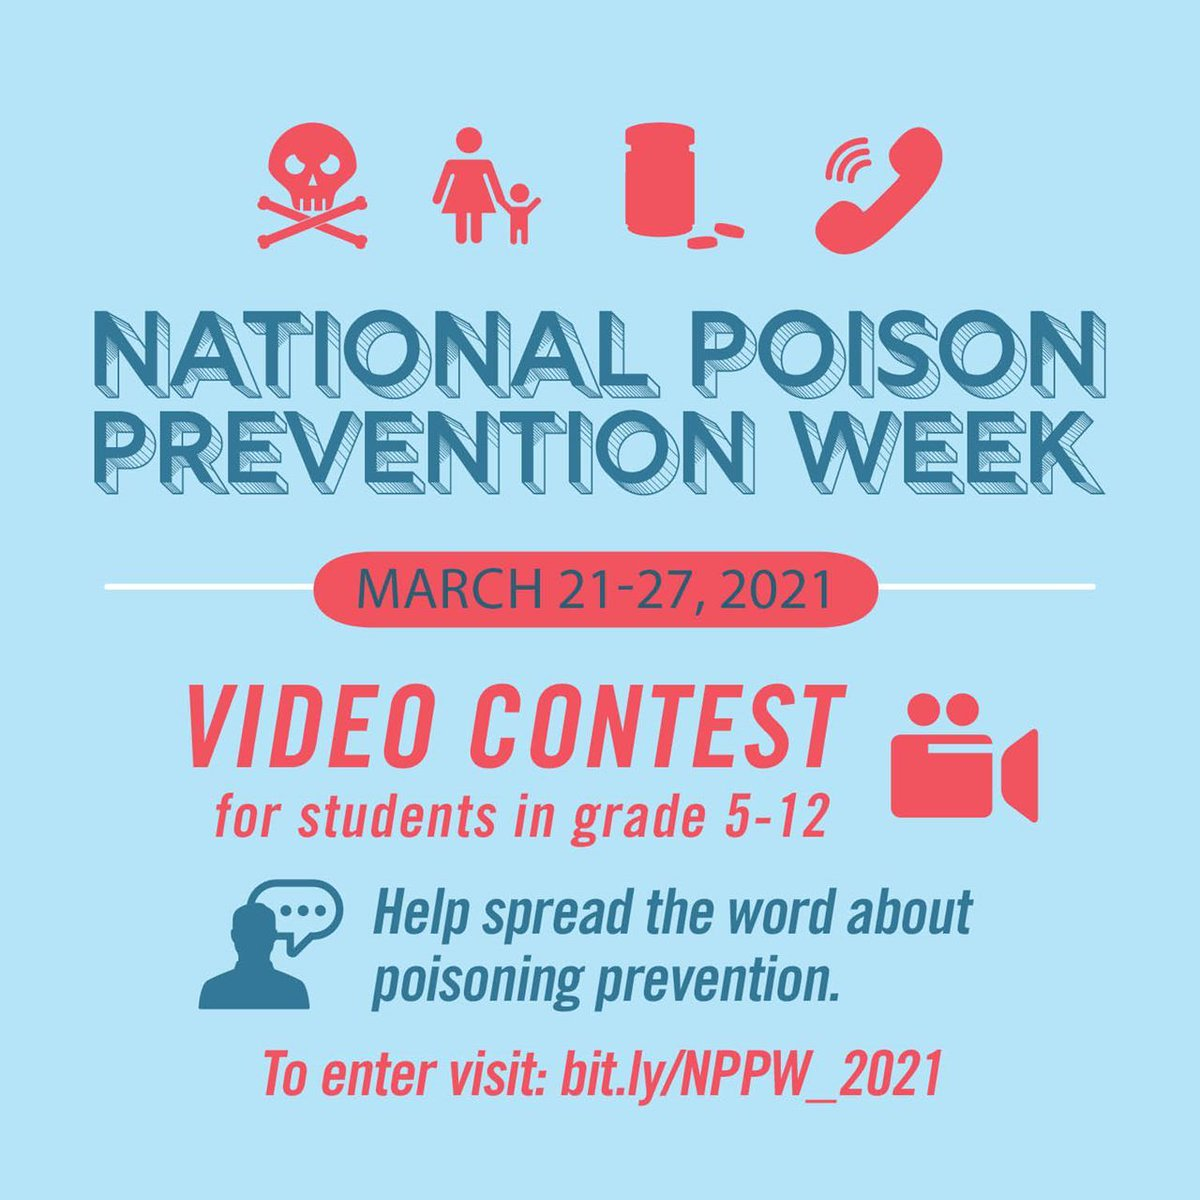 Last chance! Submit your video or poster by 11:59 pm EST this Sunday, February 21. Learn more here: https://t.co/dGdVC2t4AW #NPPW21 https://t.co/d2daY77nEl